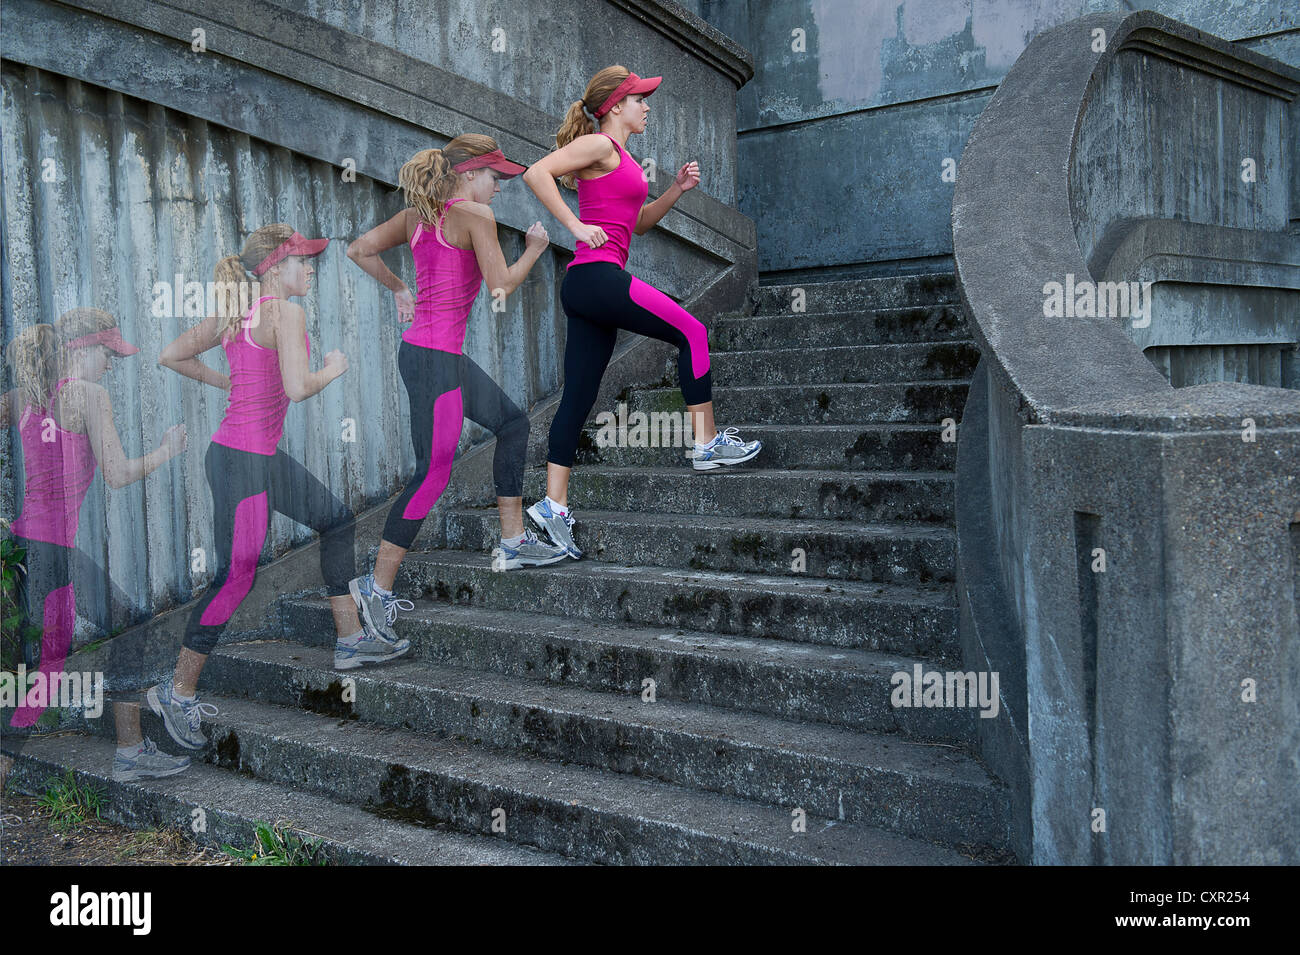 Young woman running up stairs, multiple image - Stock Image